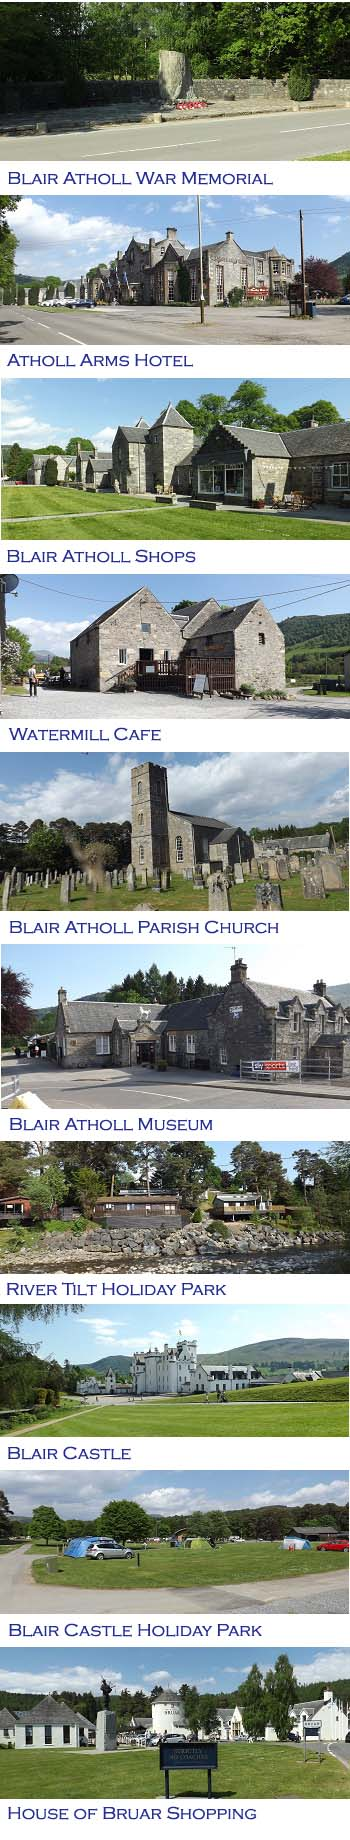 Blair Atholl Photos